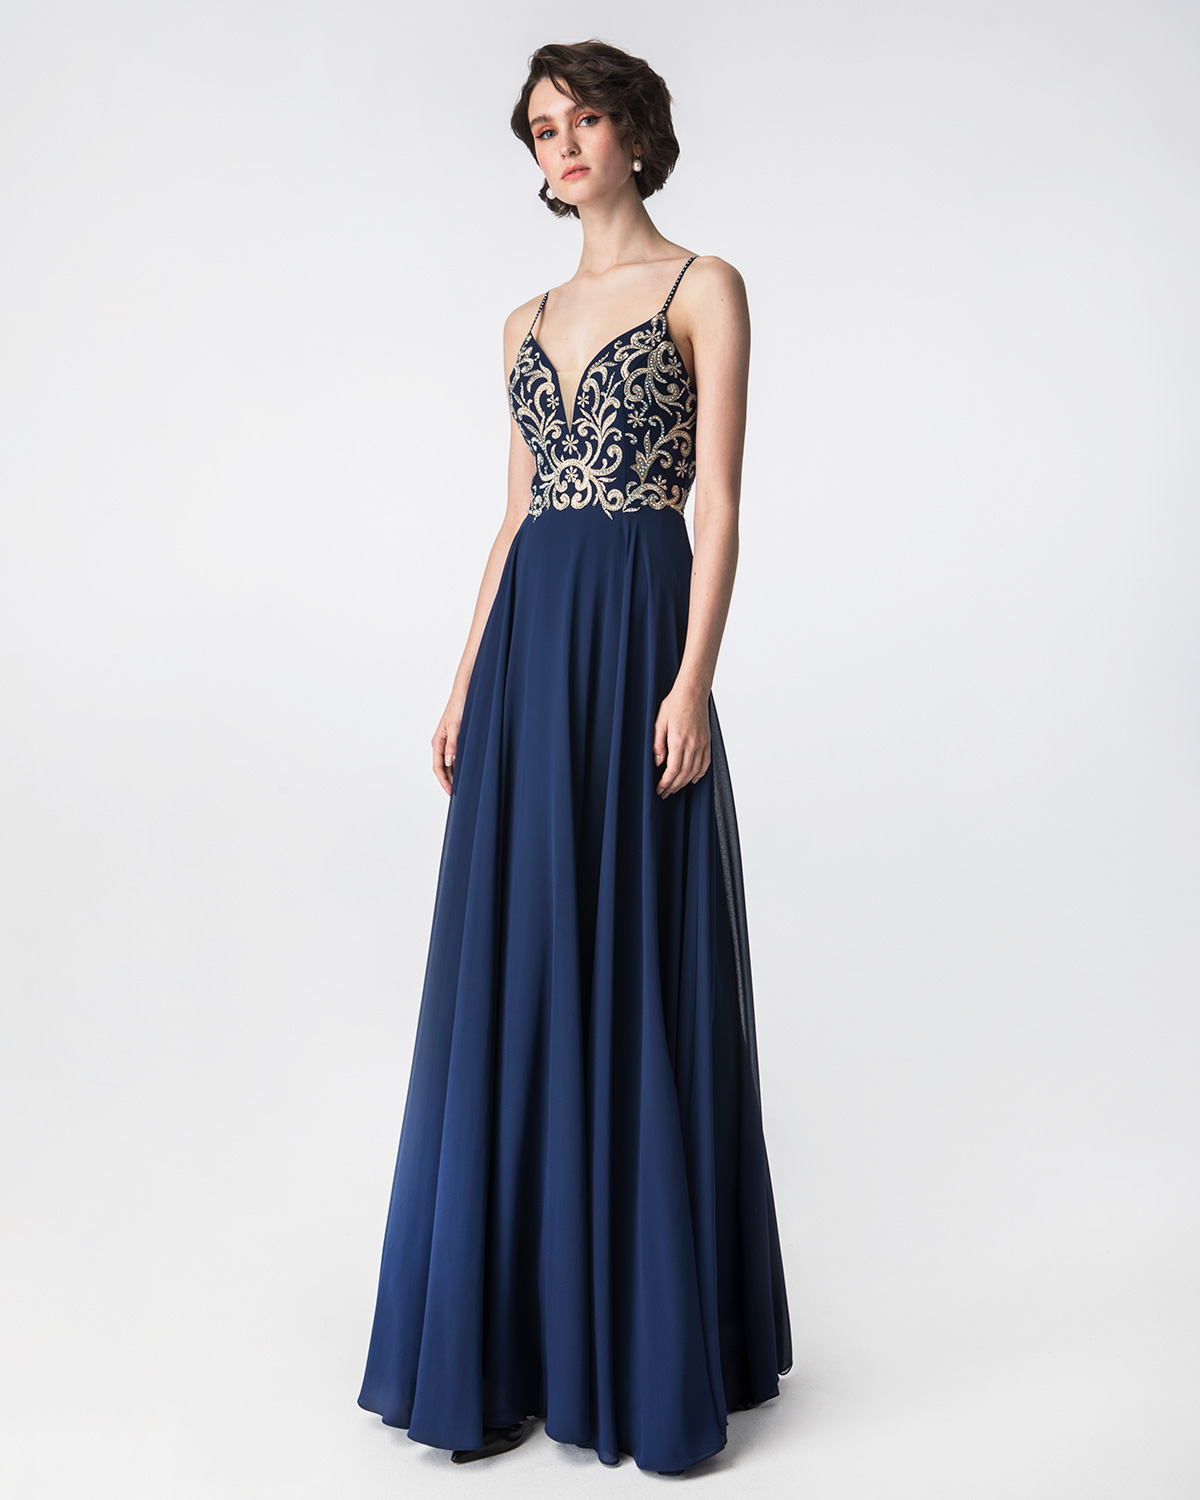 Cocktail Dresses / Long cocktail dress with beaded top and straps